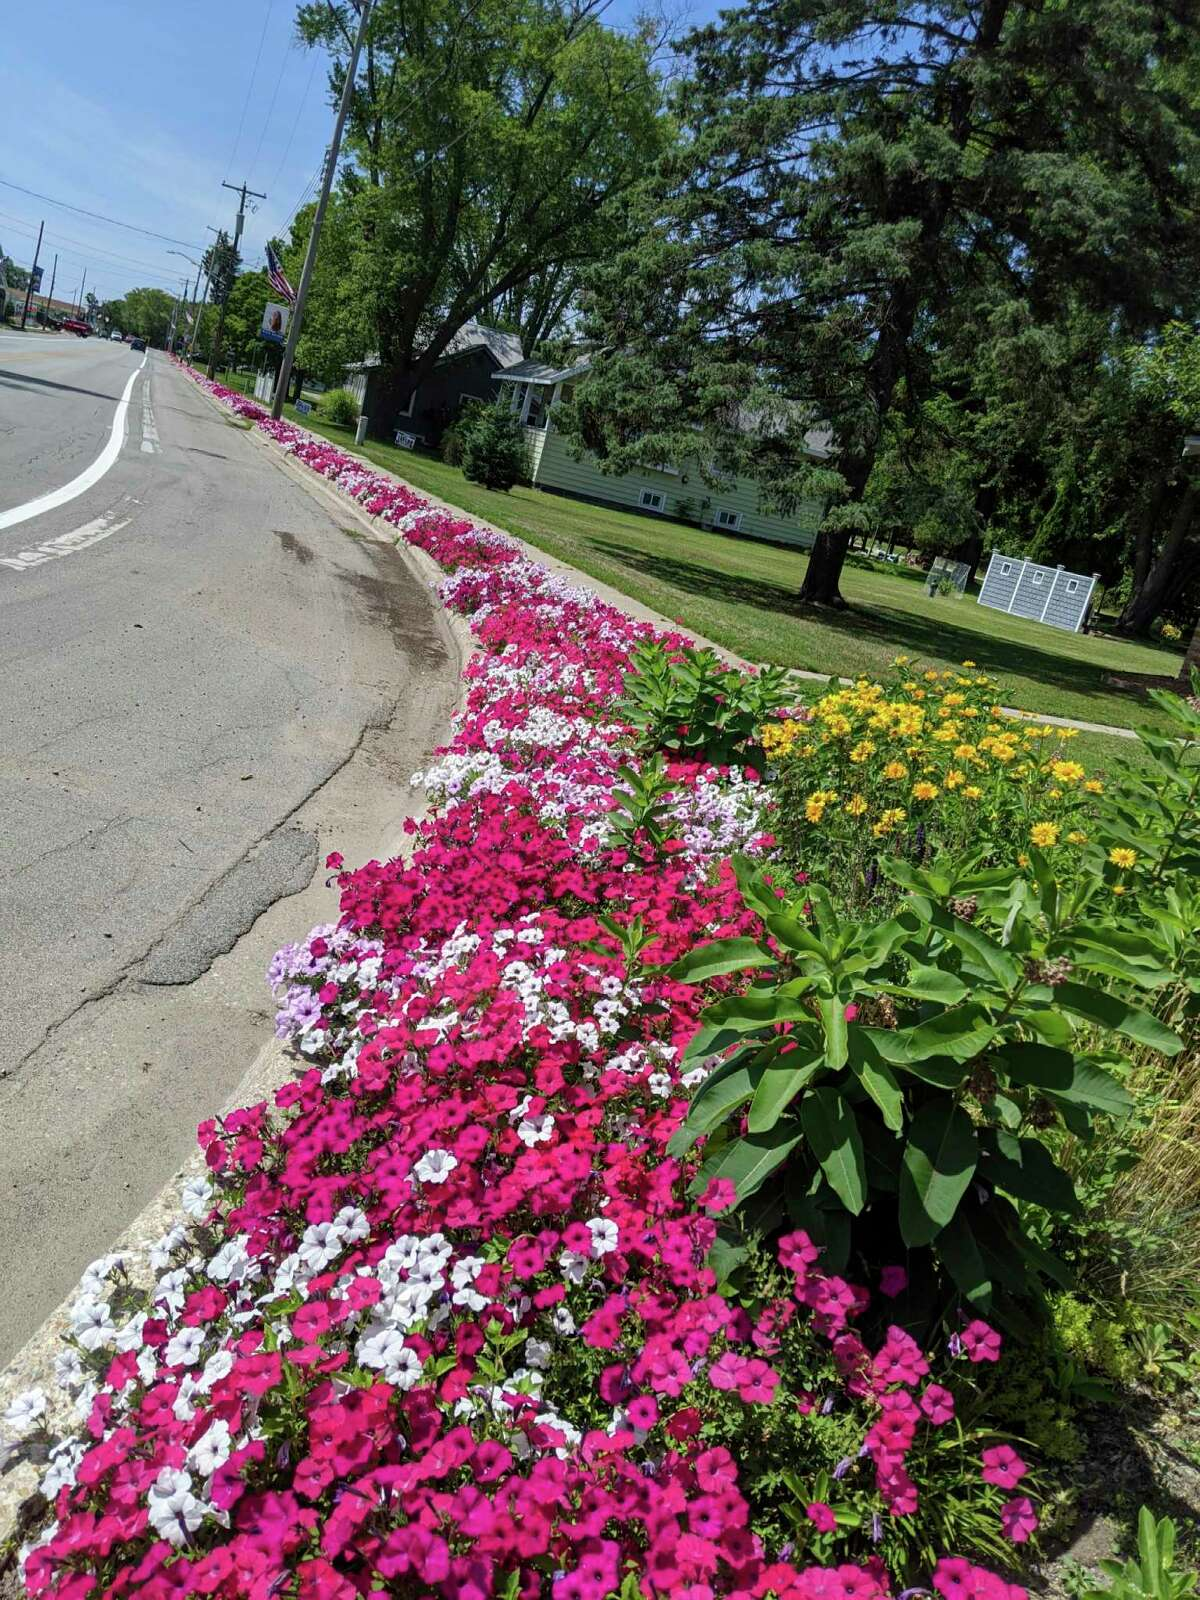 Volunteers took safety precautions in light of the coronavirus pandemic and planted the Petunia Parade in May along M-22 in Onekama. (Courtesy photo)